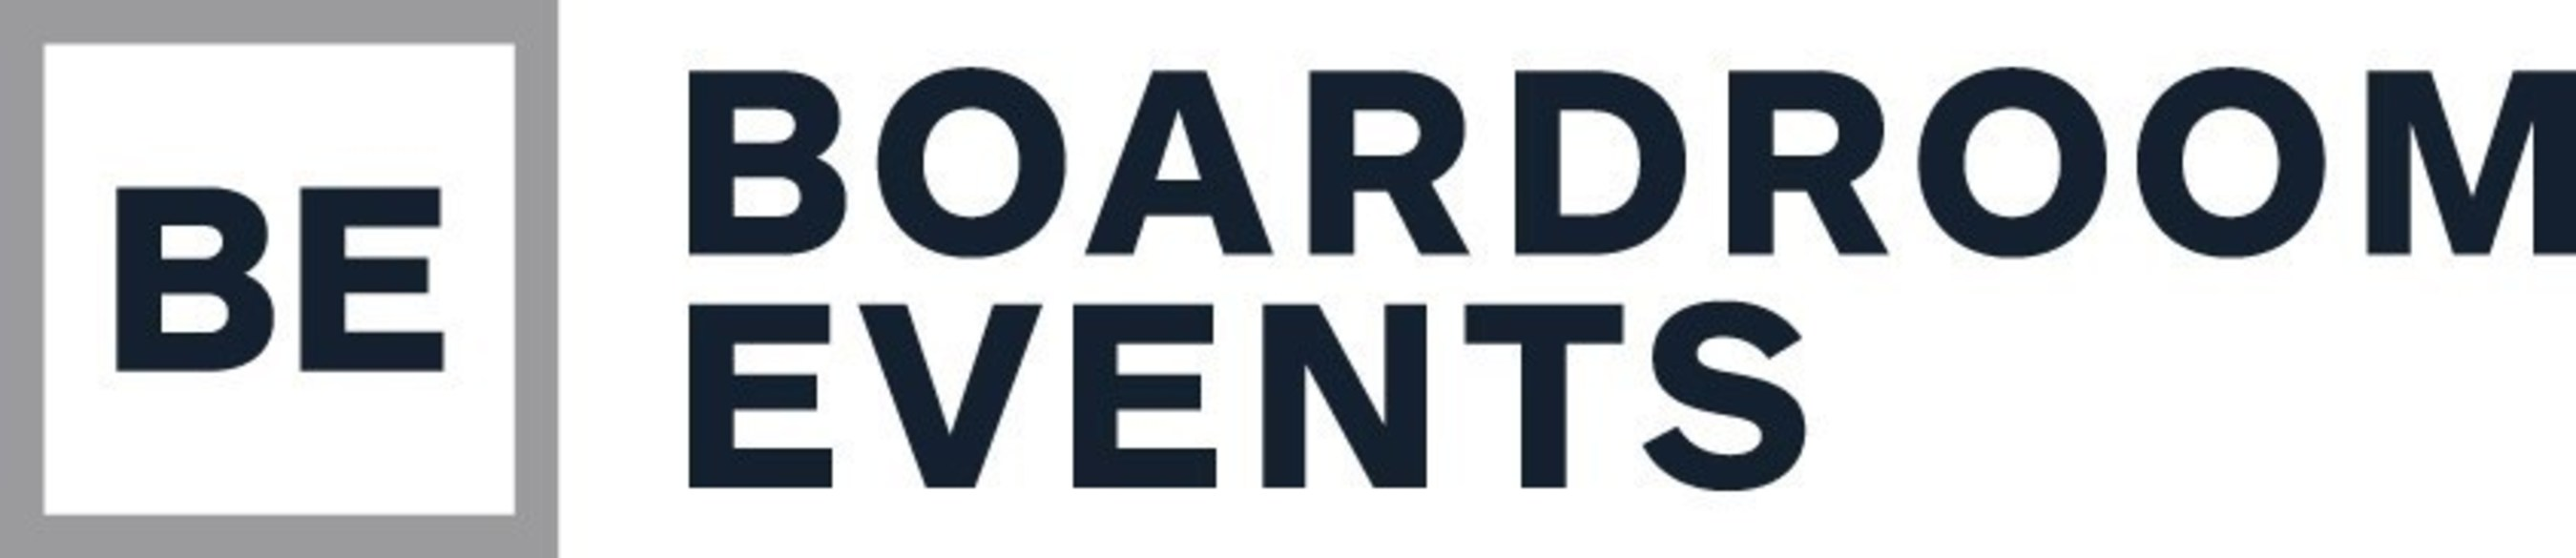 Boardroom Events Shines Spotlight on IT Collaboration with CIO and Vendor Excellence Awards